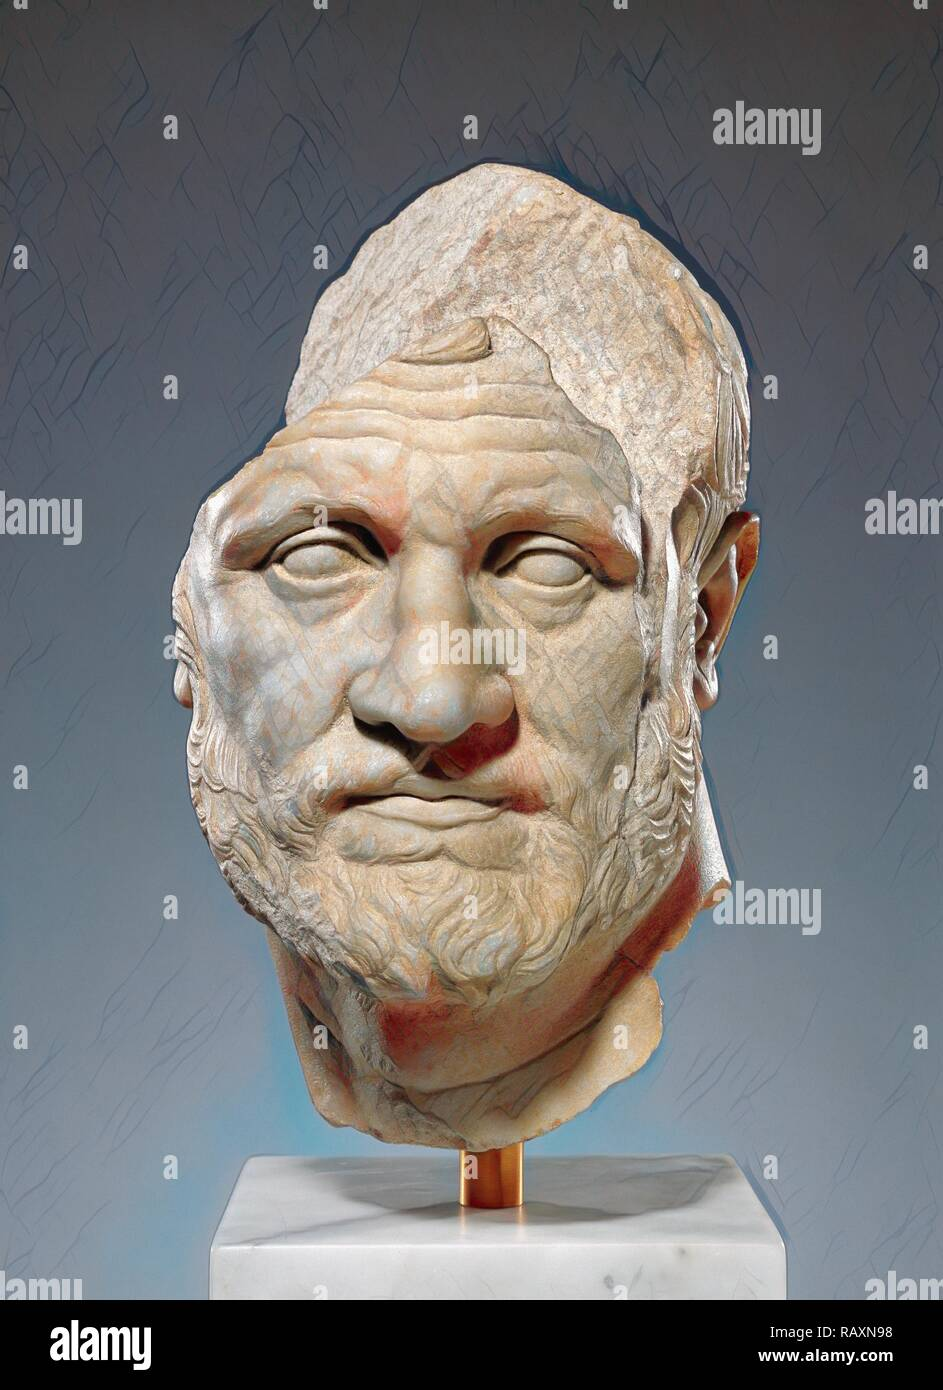 Portrait of a Bearded Man, Unknown, Pergamon, Asia Minor, 160 - 150 B.C., Marble, Object: H: 40.7 x W: 25 x D: 31.7 reimagined - Stock Image